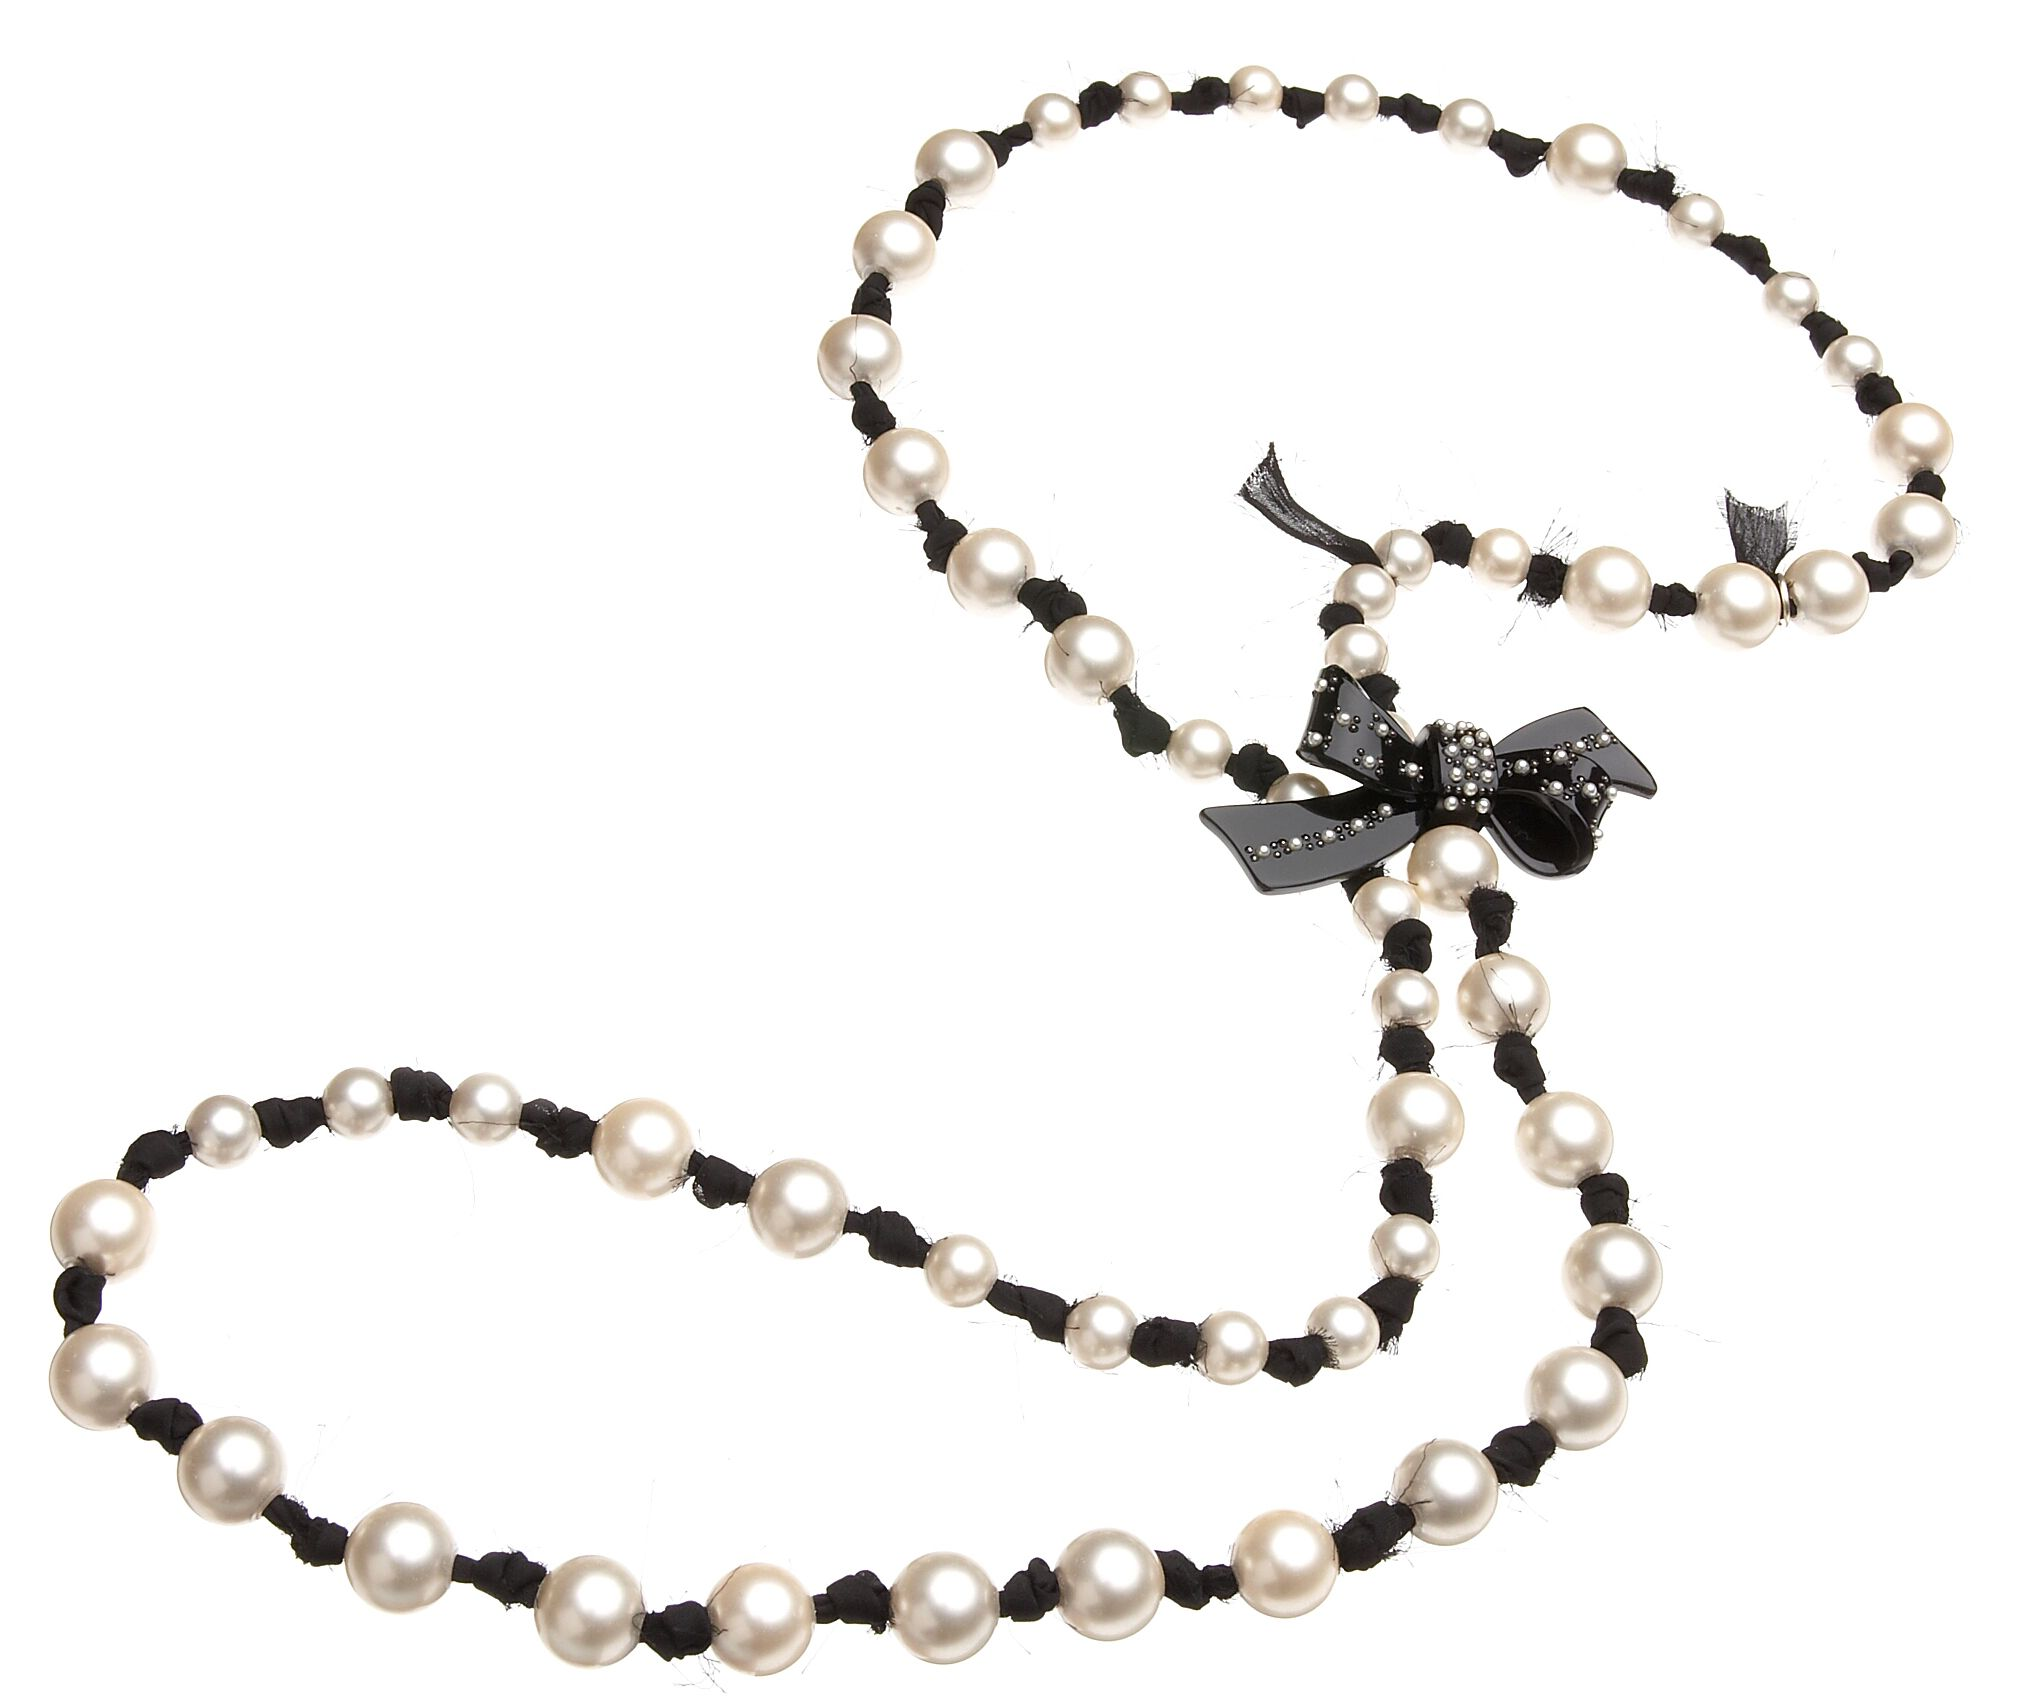 Knotted tuxedo pearls